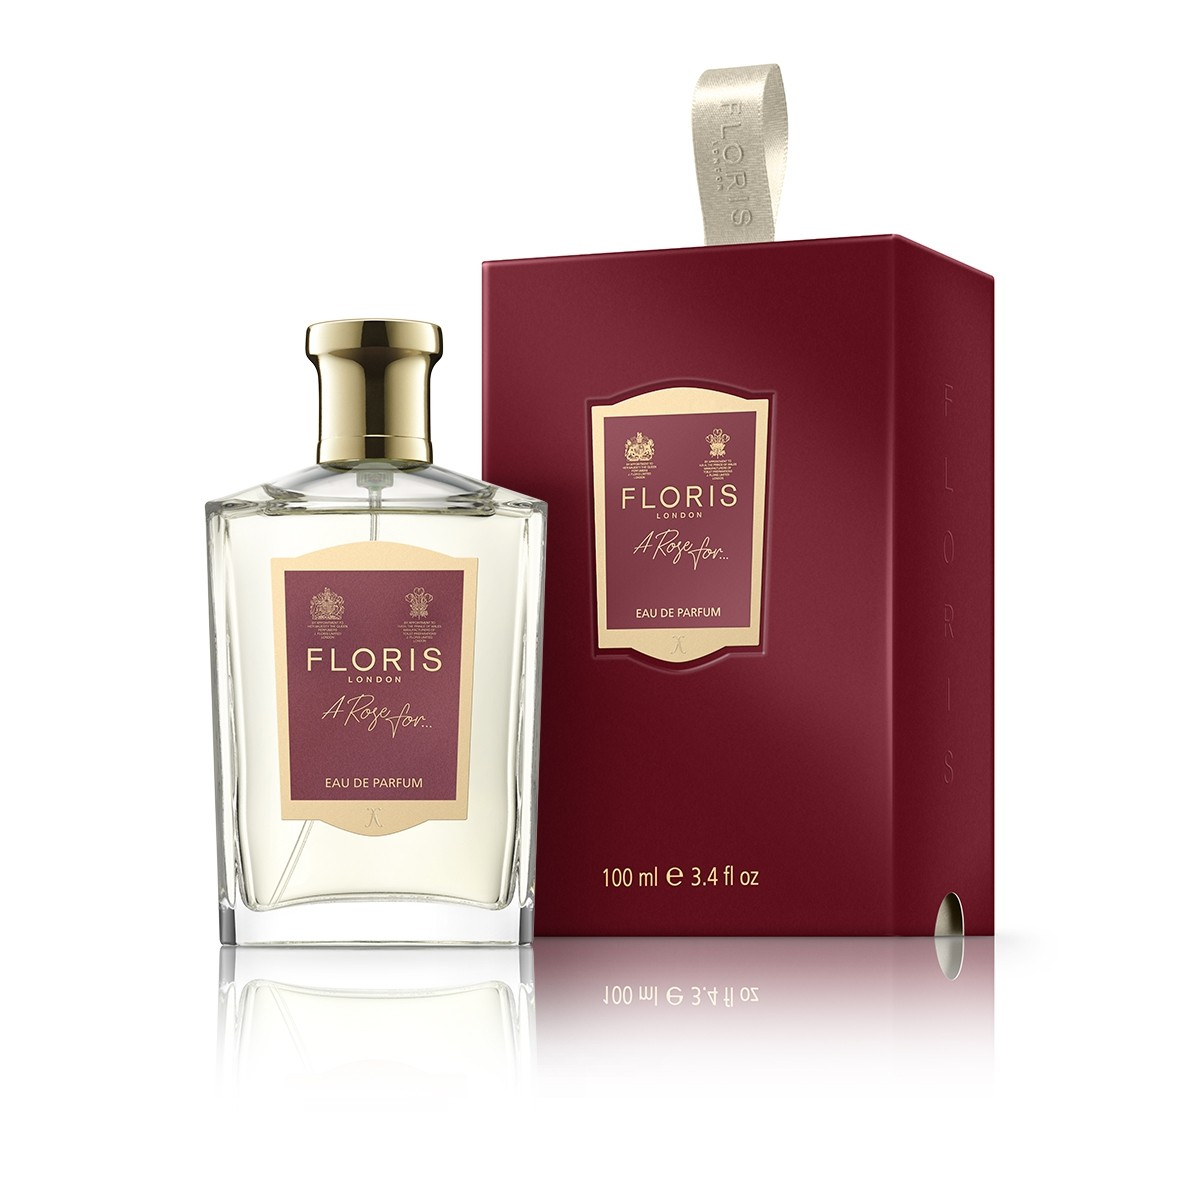 Floris A Rose For... Eau de Parfum 100 ml